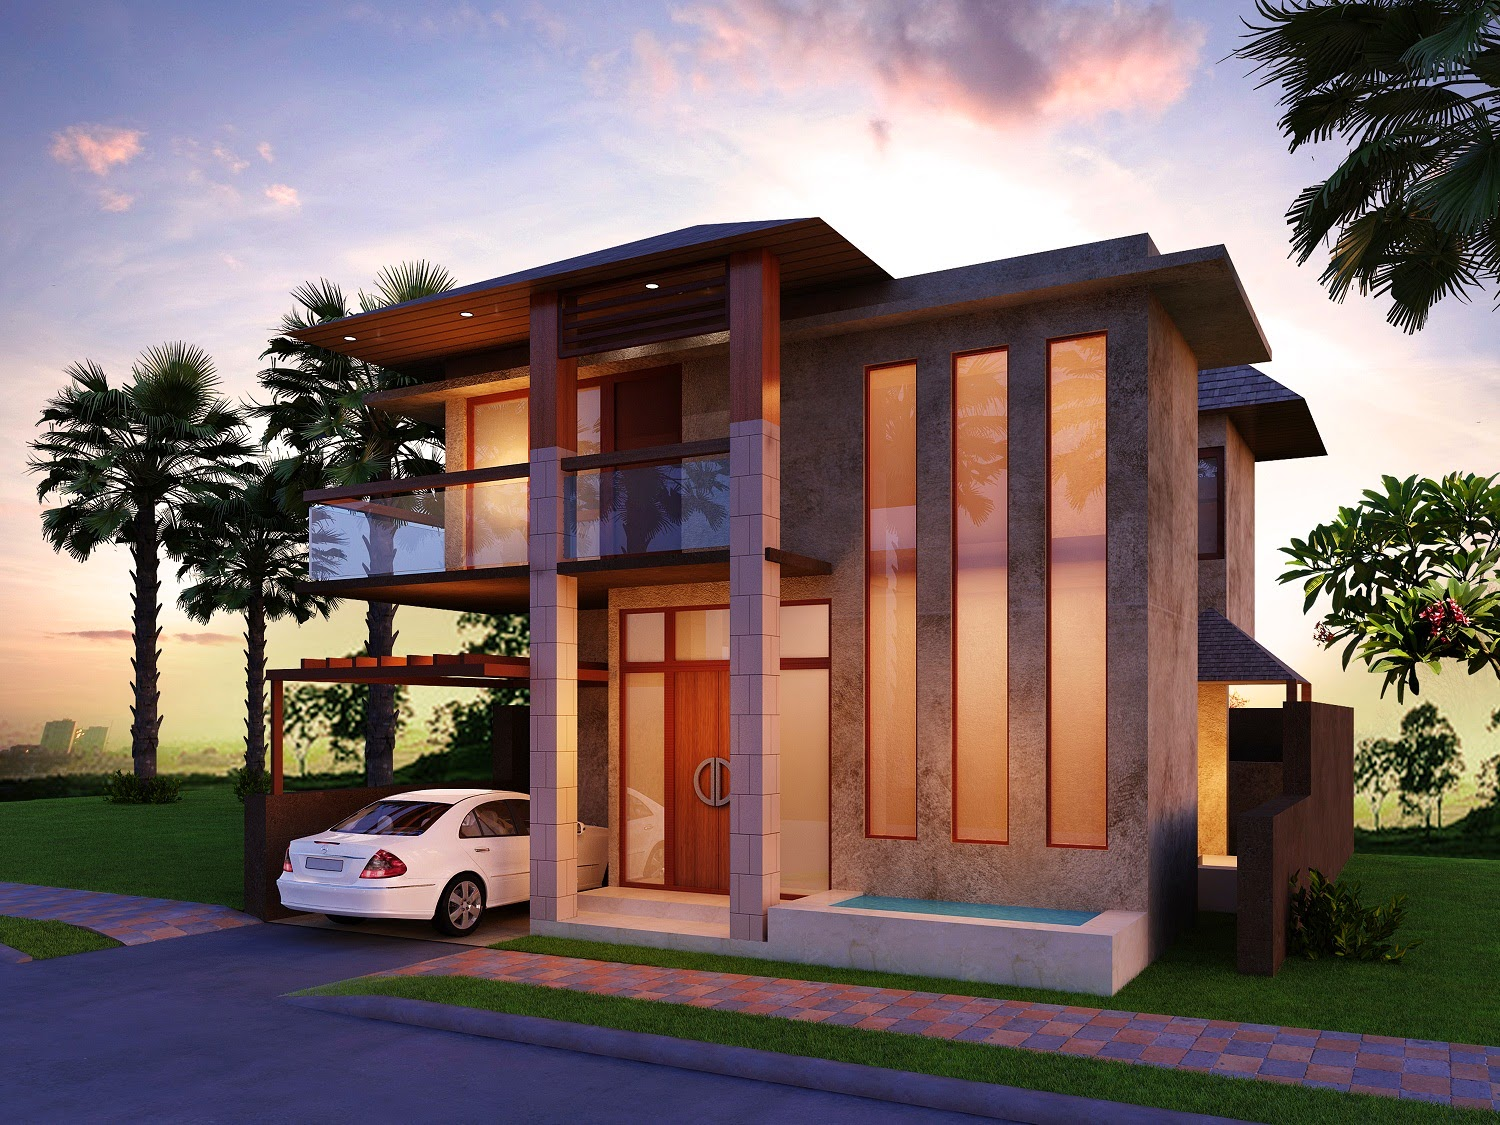 Front Elevation Of Villas In Bangalore : Villas in bangalore ananthara bhk for